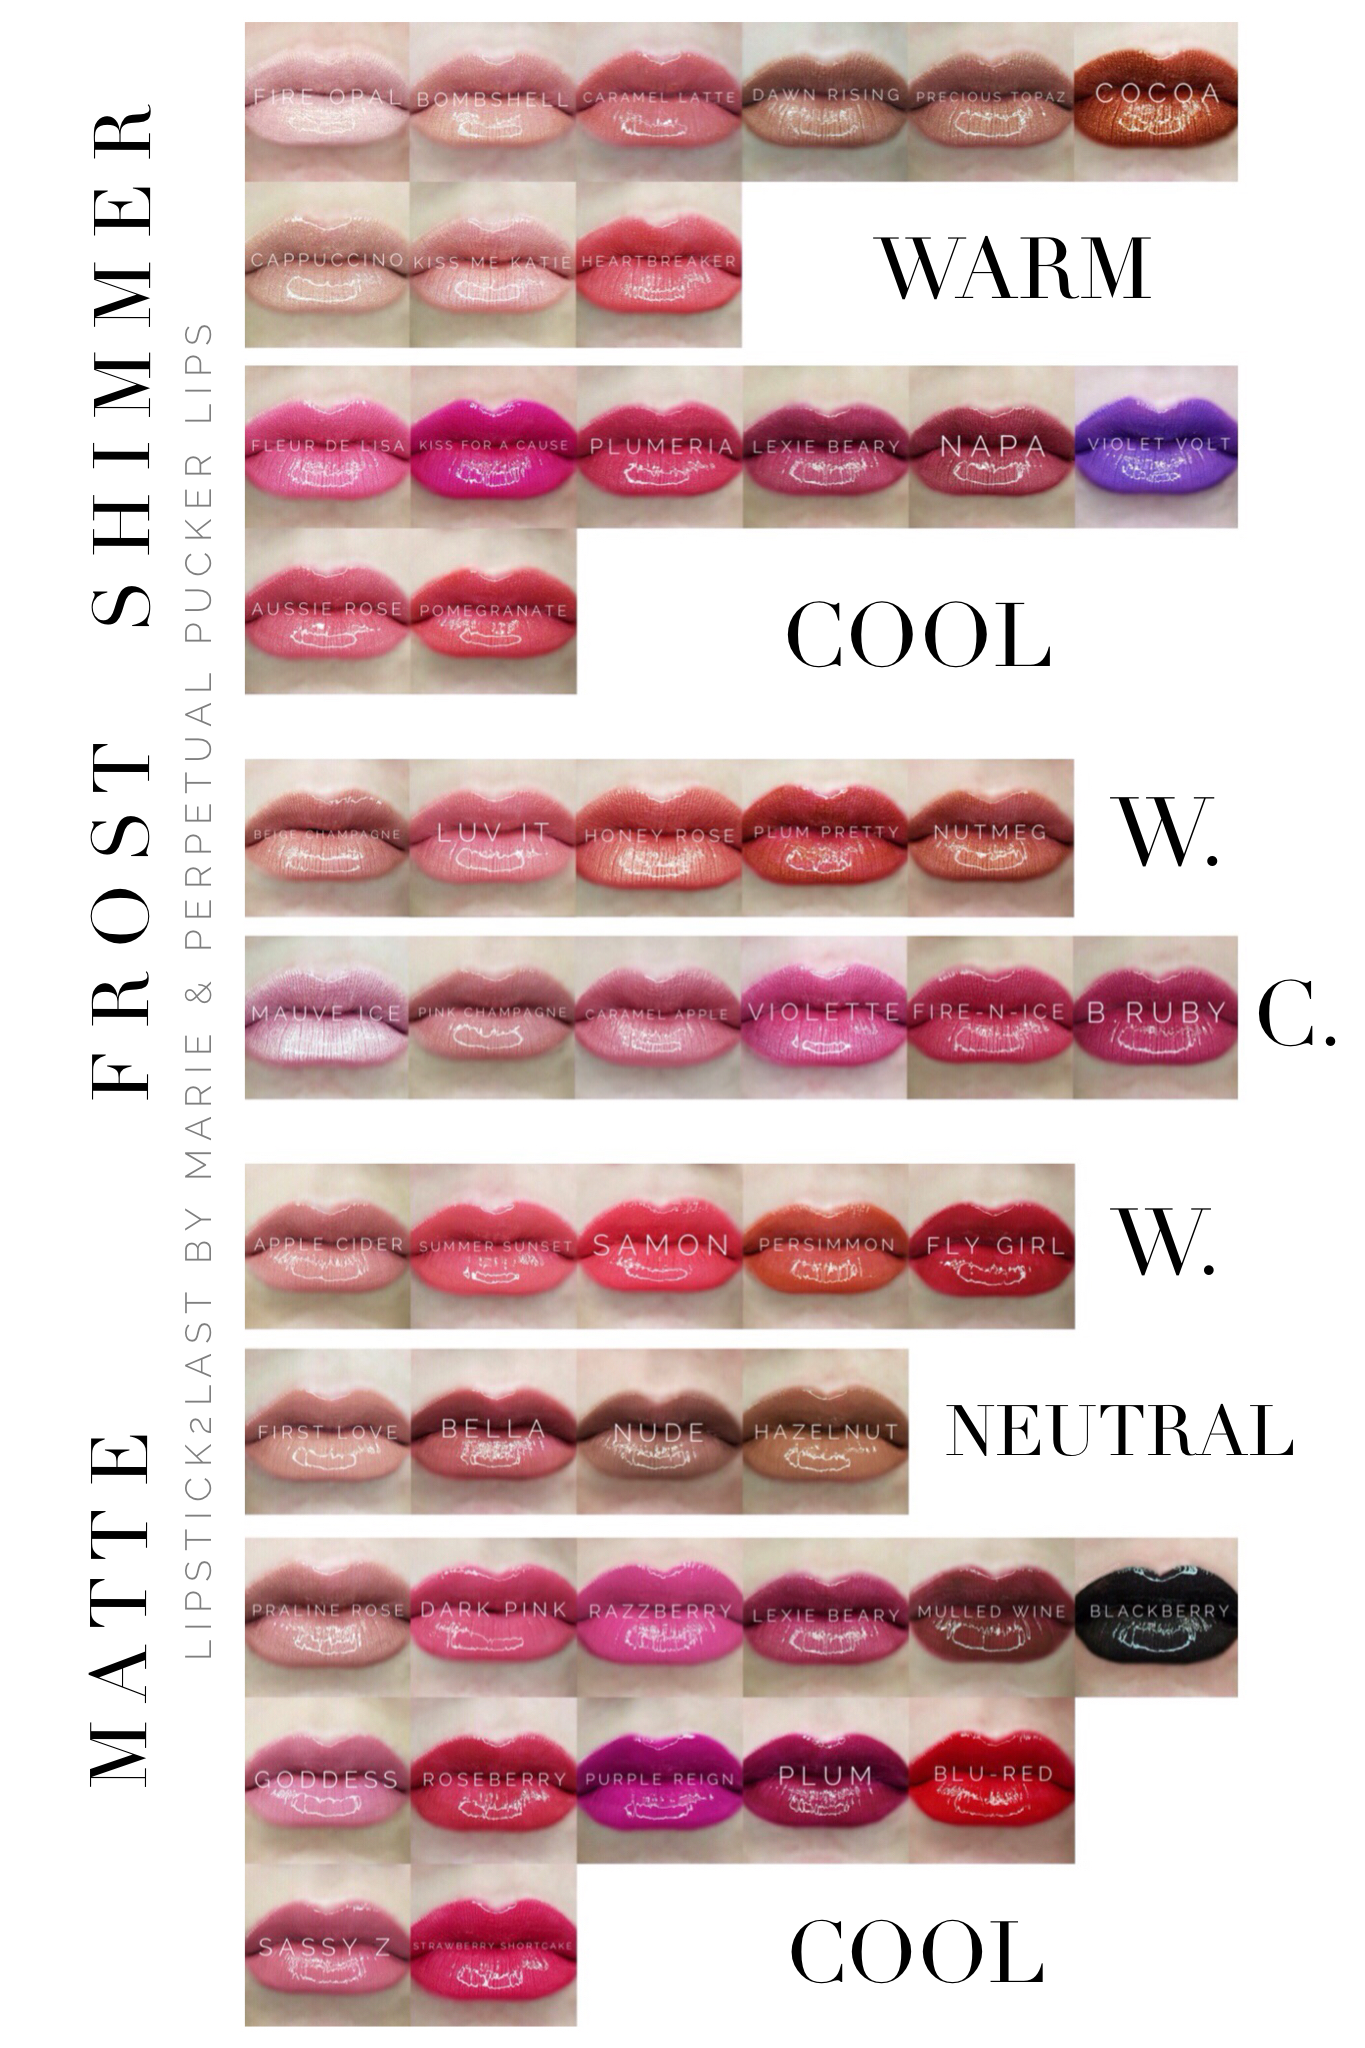 Final 50 Lipsense Colors By Senegence Chart By Color Tone And Color Finish Warm Tone Cool Tone